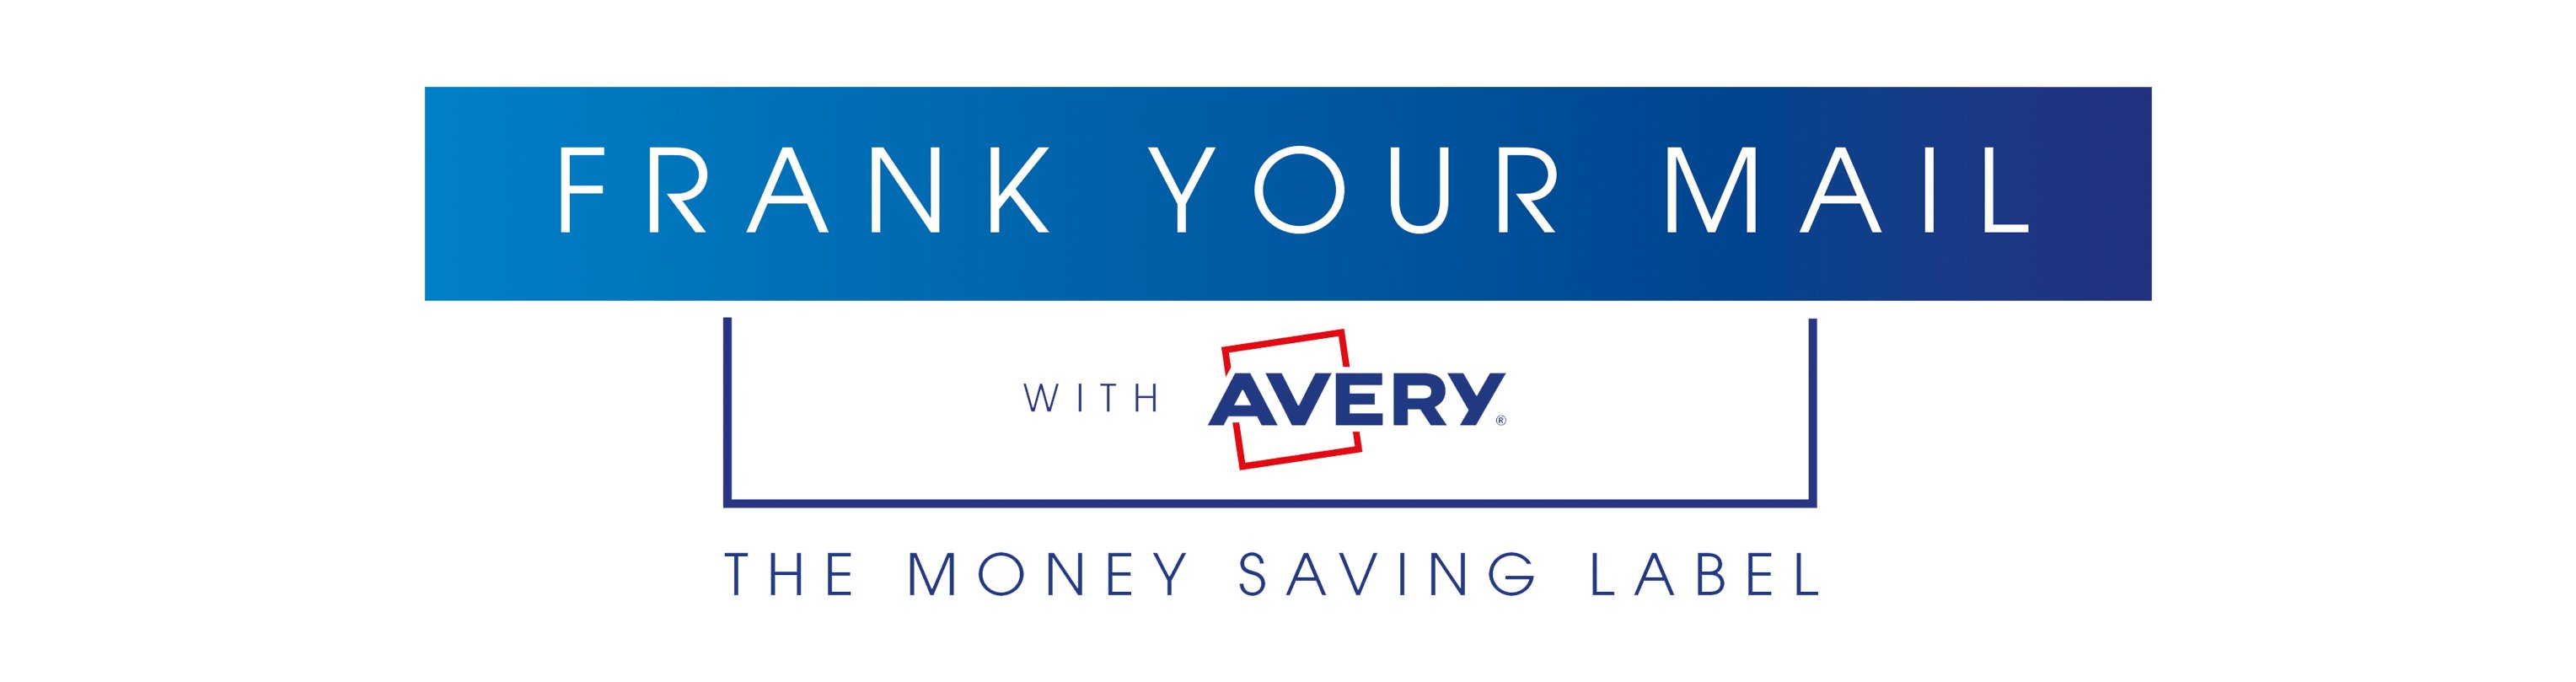 Frank your mail with Avery Franking Labels